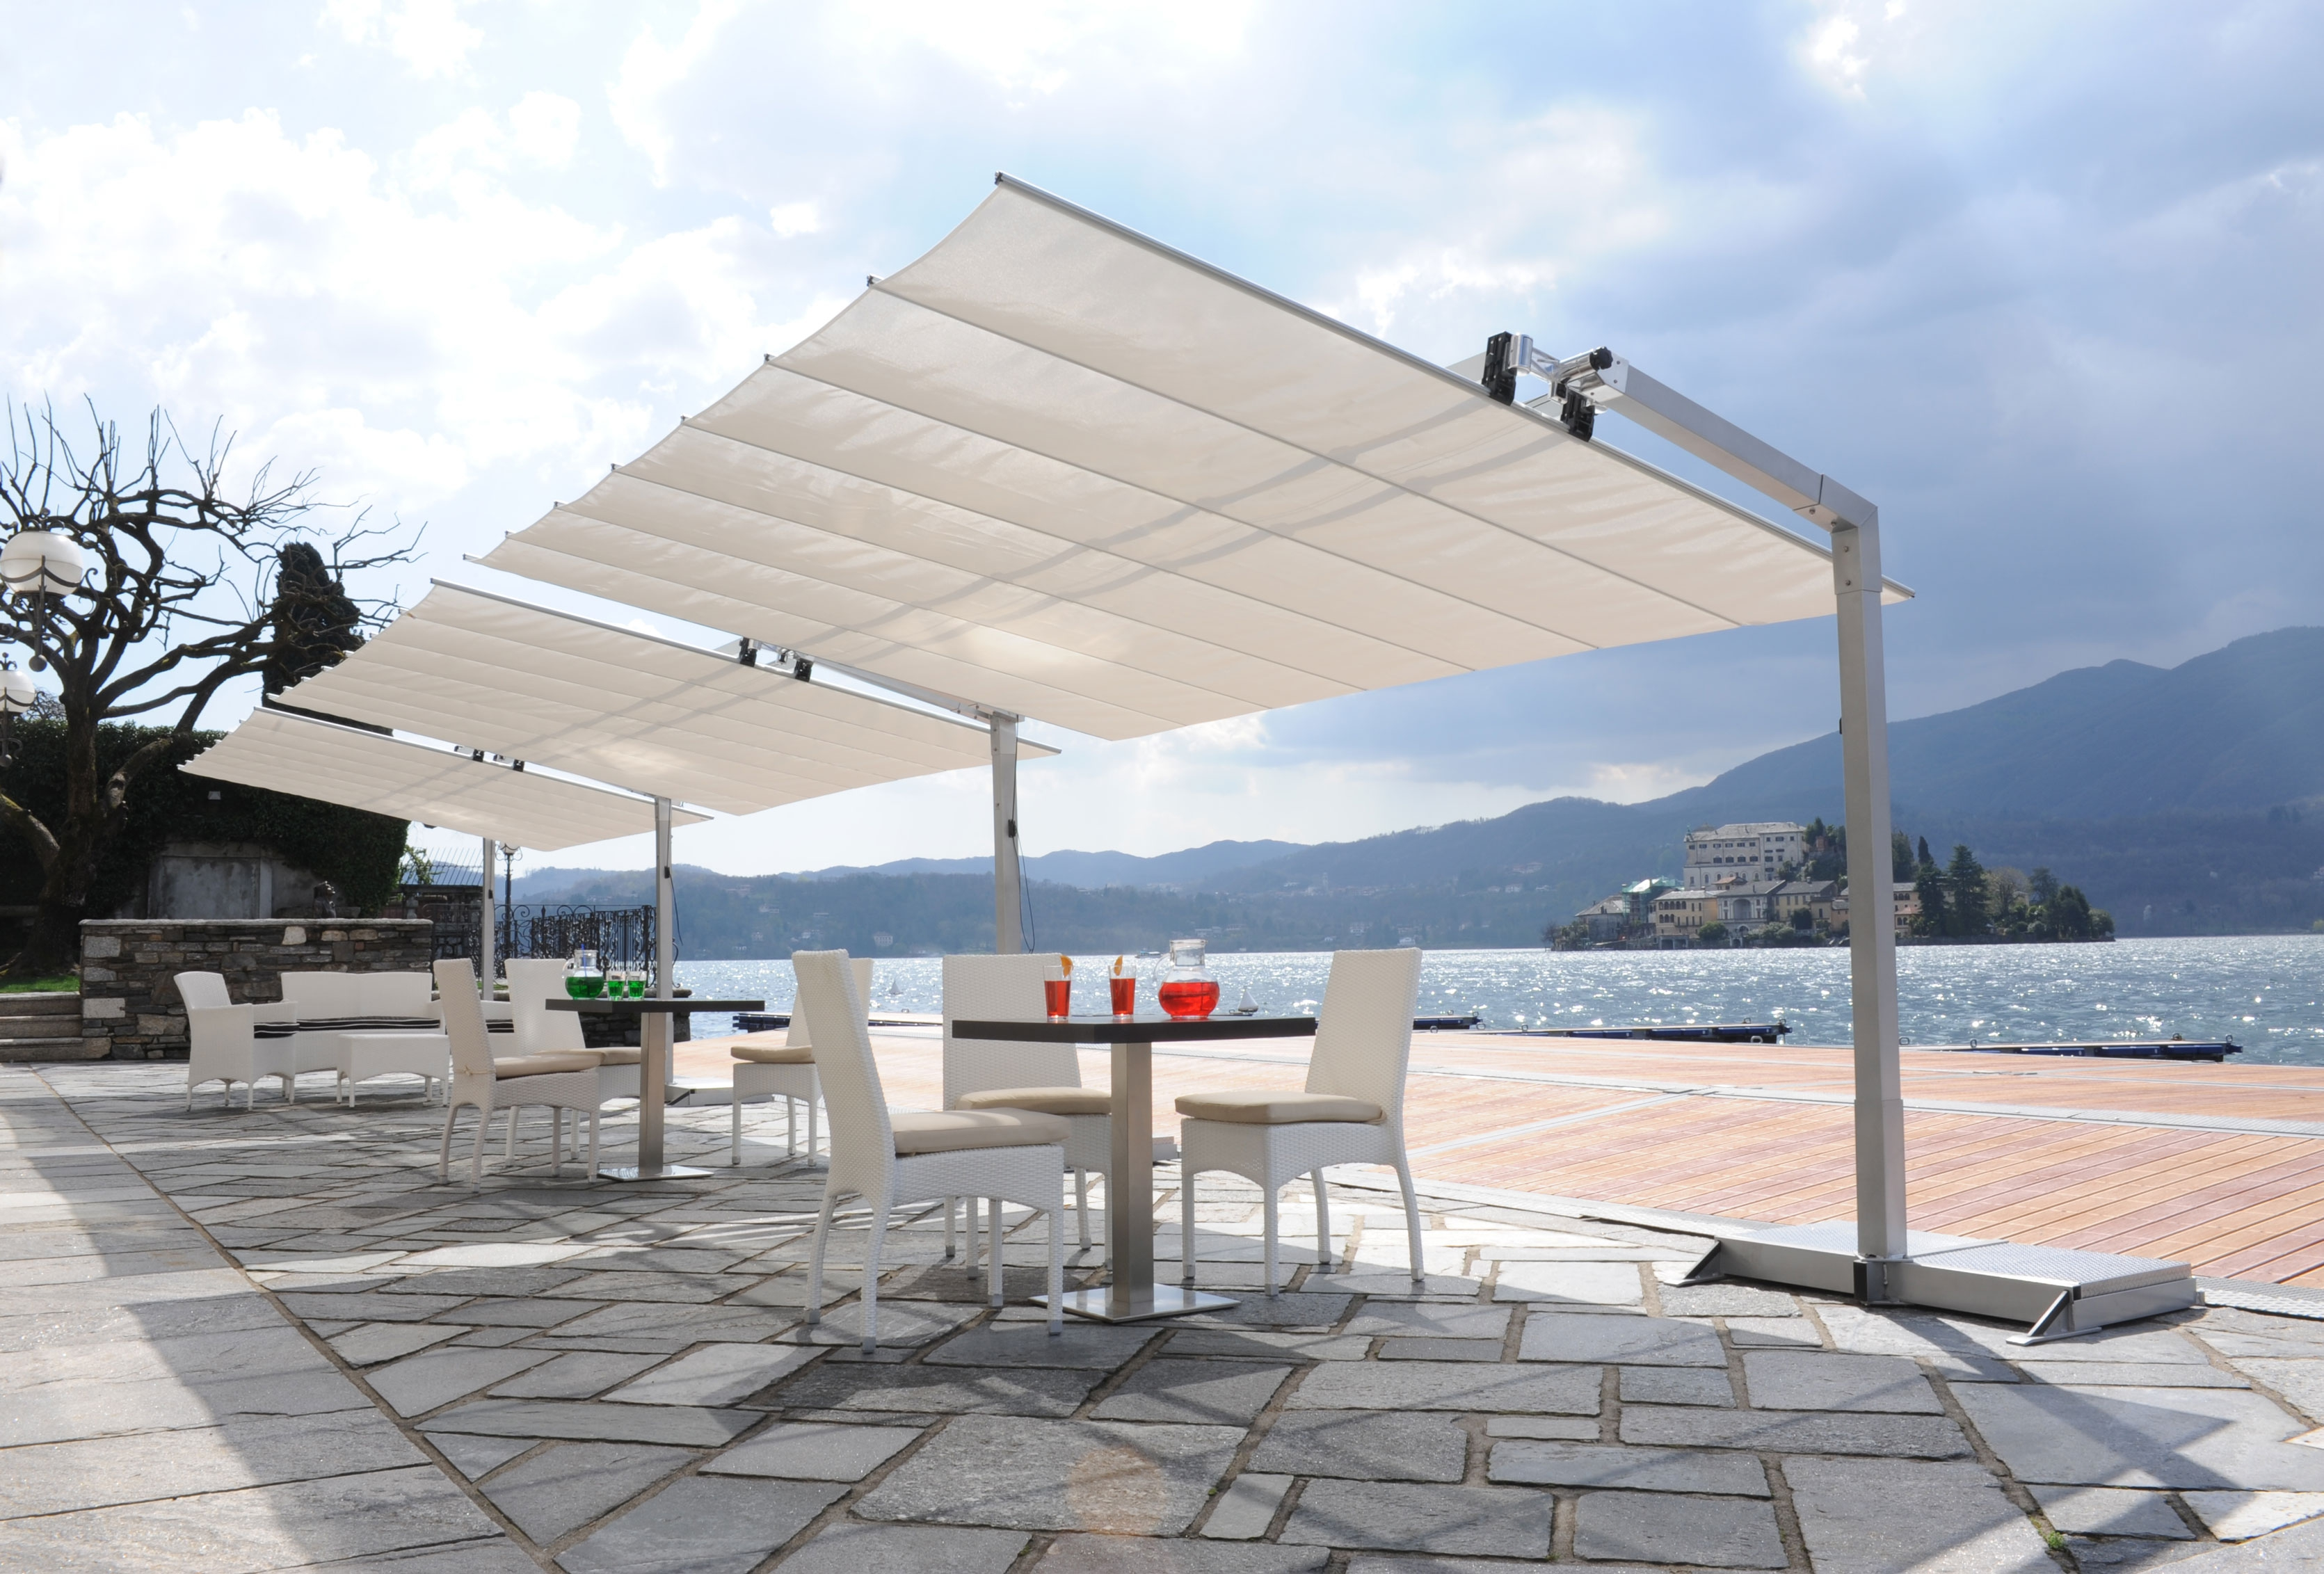 freestanding foto unica canopy motorised electric awning index awnings med canopies retractable gibus